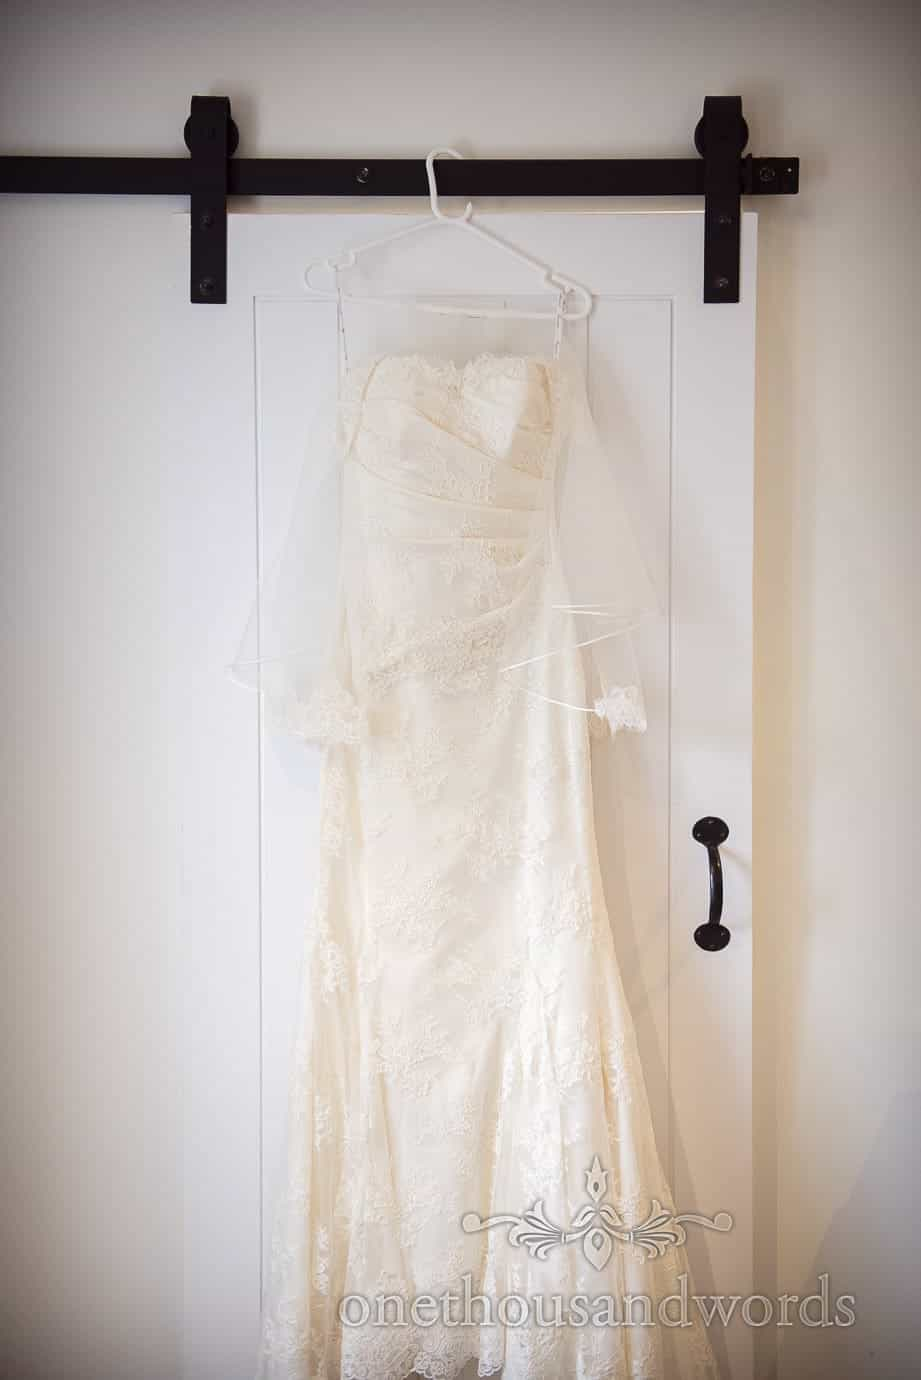 White trumpet wedding dress with lace detailing hangs on white door on wedding morning